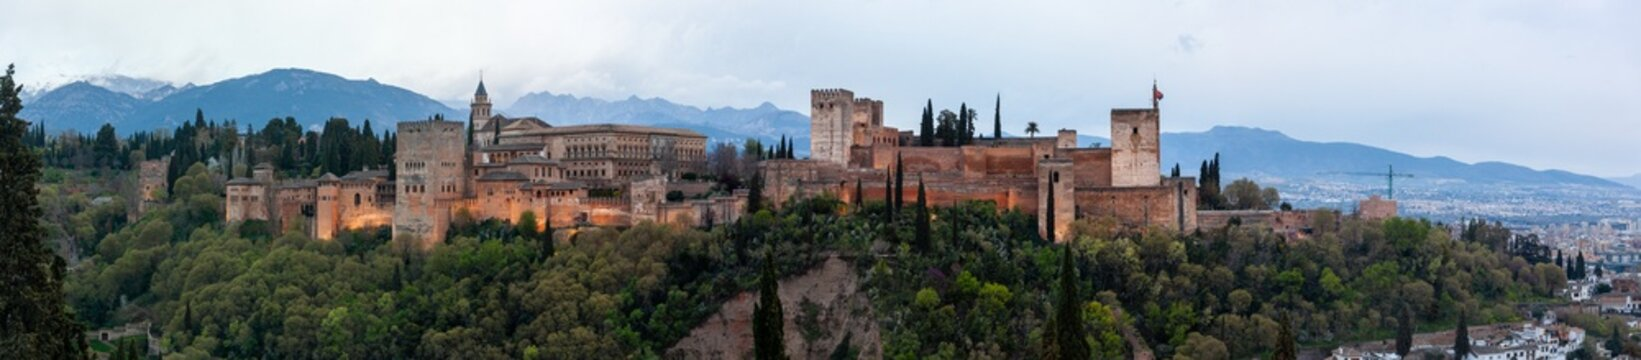 Panoramic view of the famous Alhambra palace at sunset, Granada, Spain